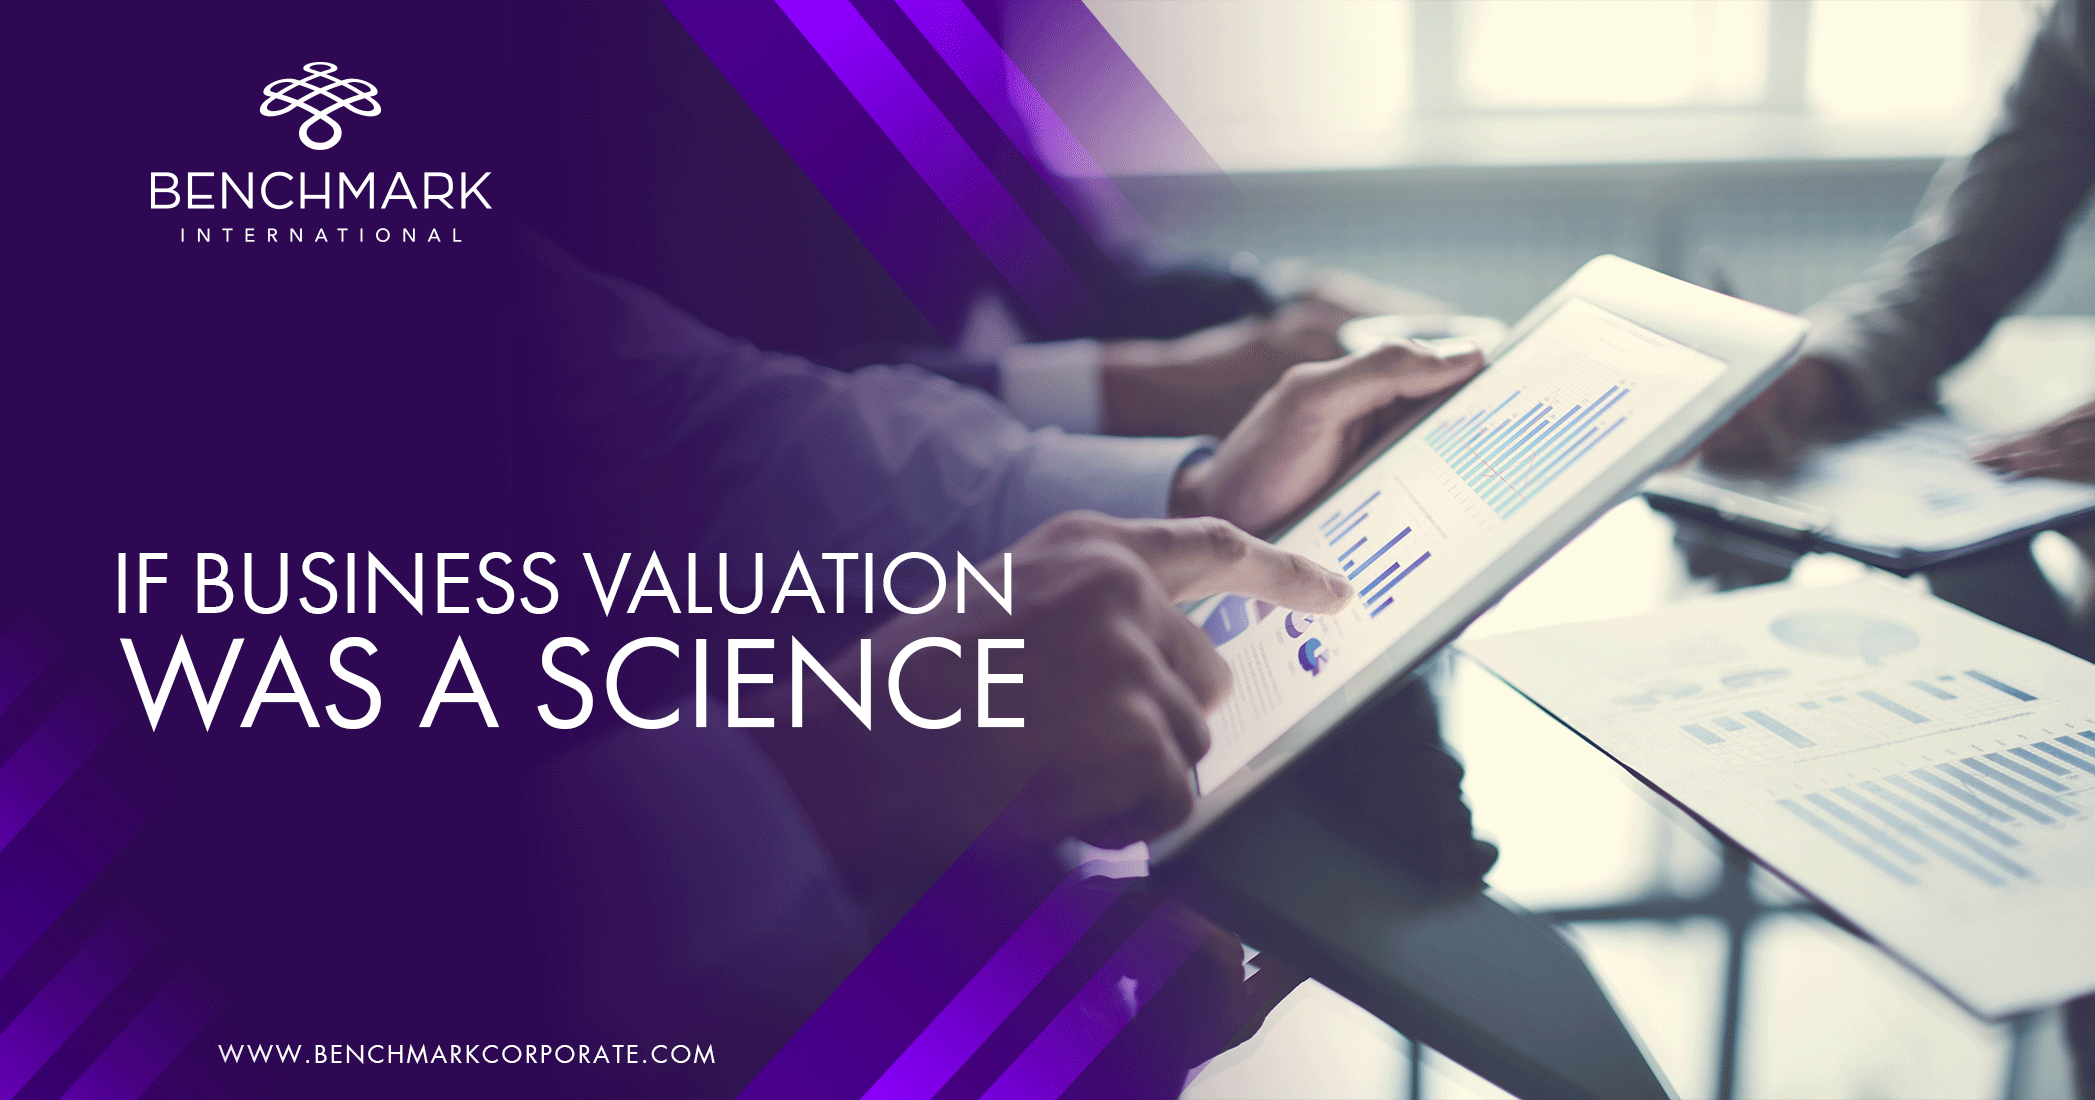 Valuation-was-a-science